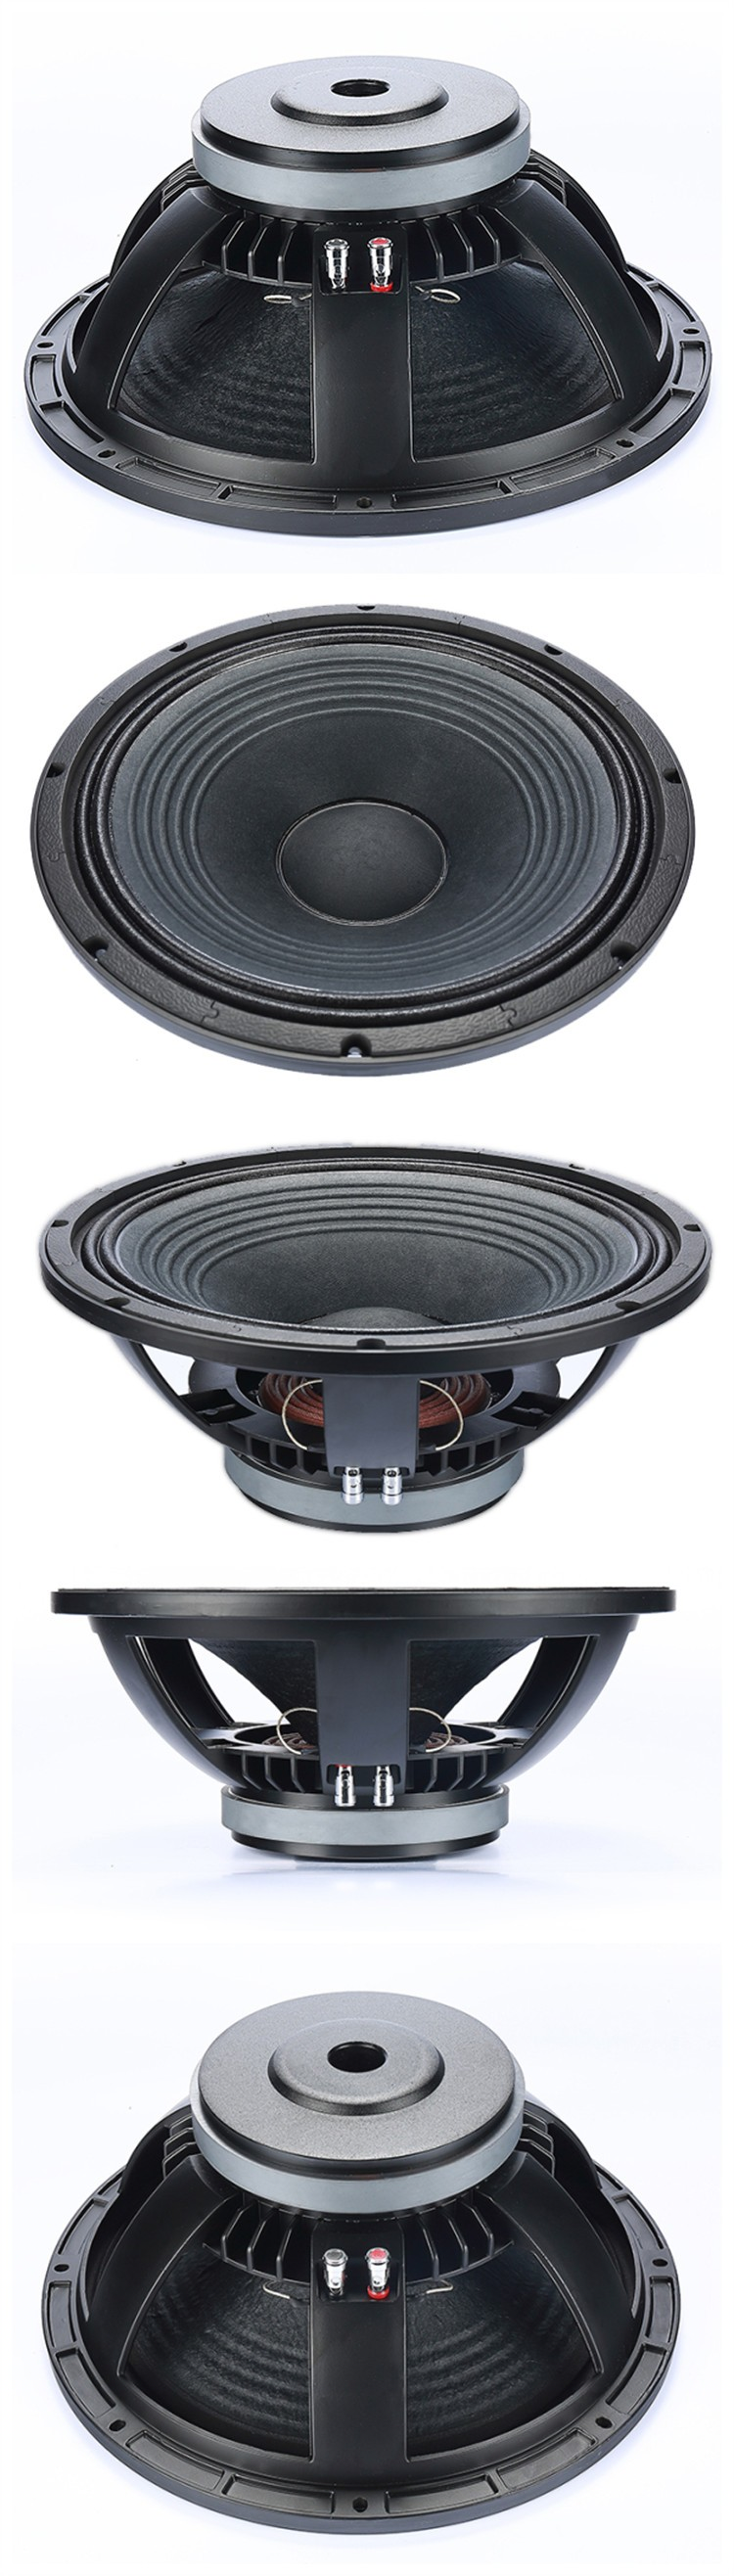 "Harga 15 inch full range dj equipment long throw real sound woofer for empty speaker box 15"" wholesale china oem factory price"